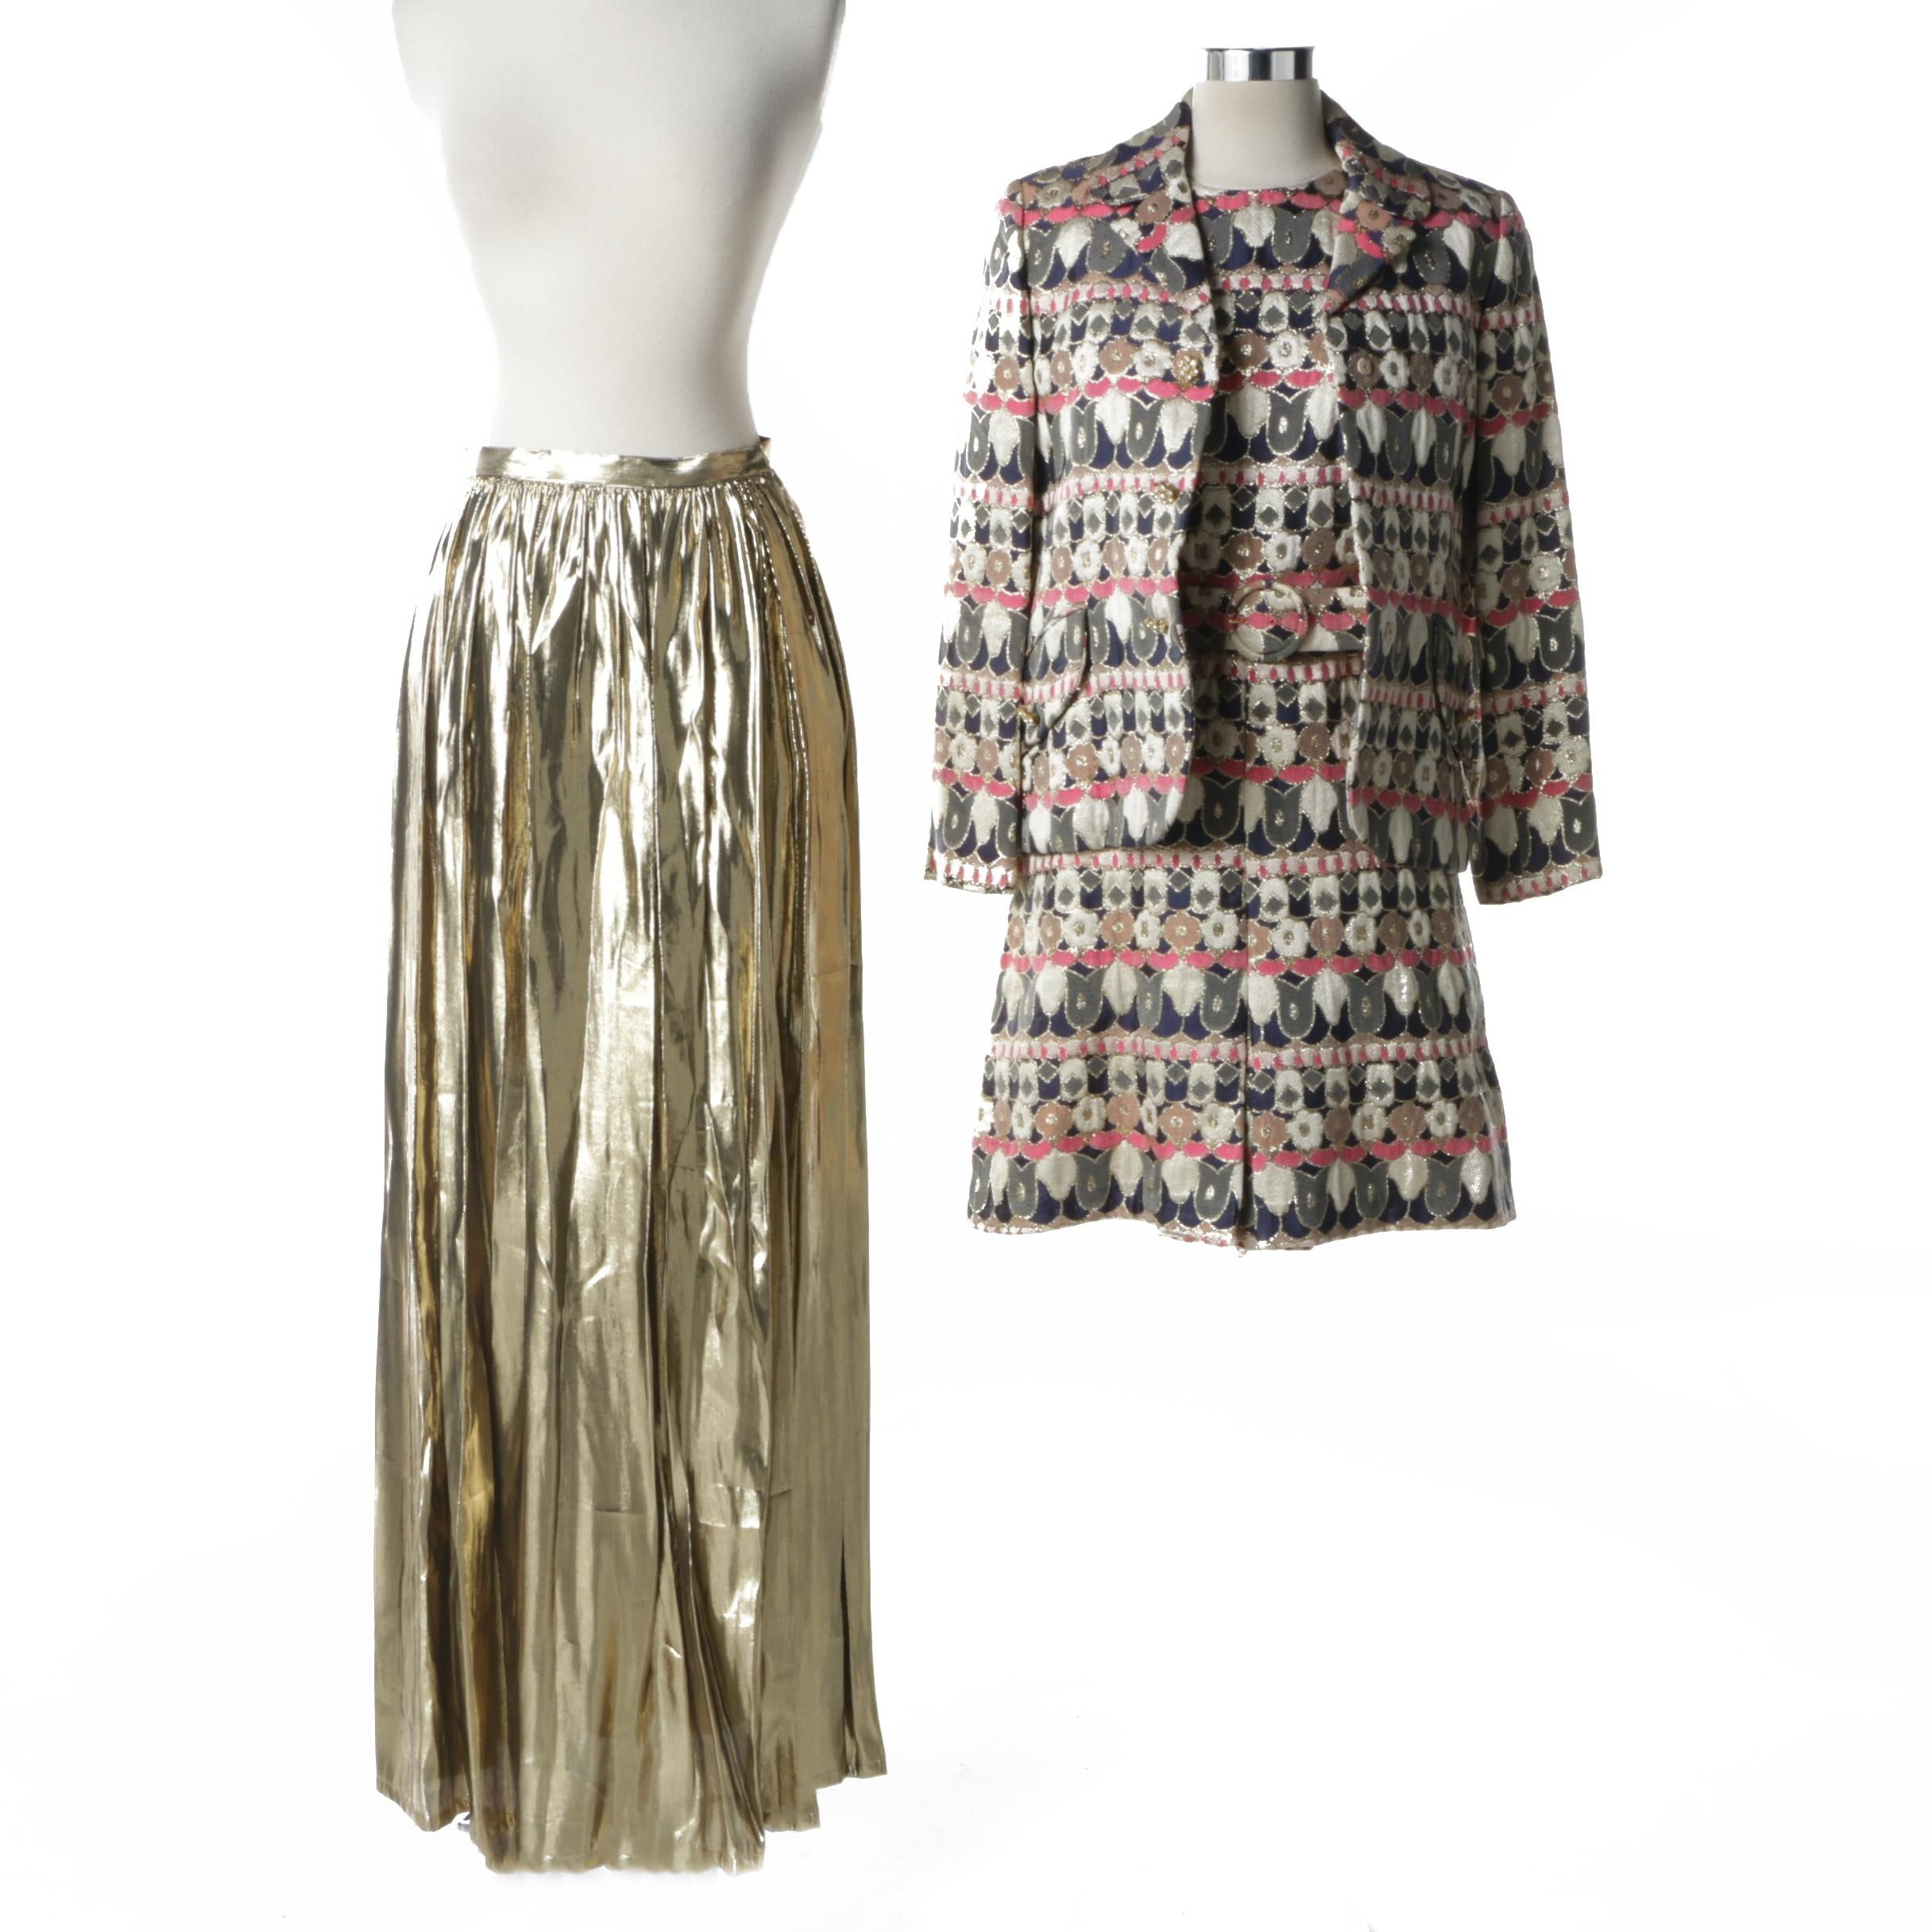 Women's 1960s Vintage Two-Piece Brocade Suit and Metallic Gold Skirt